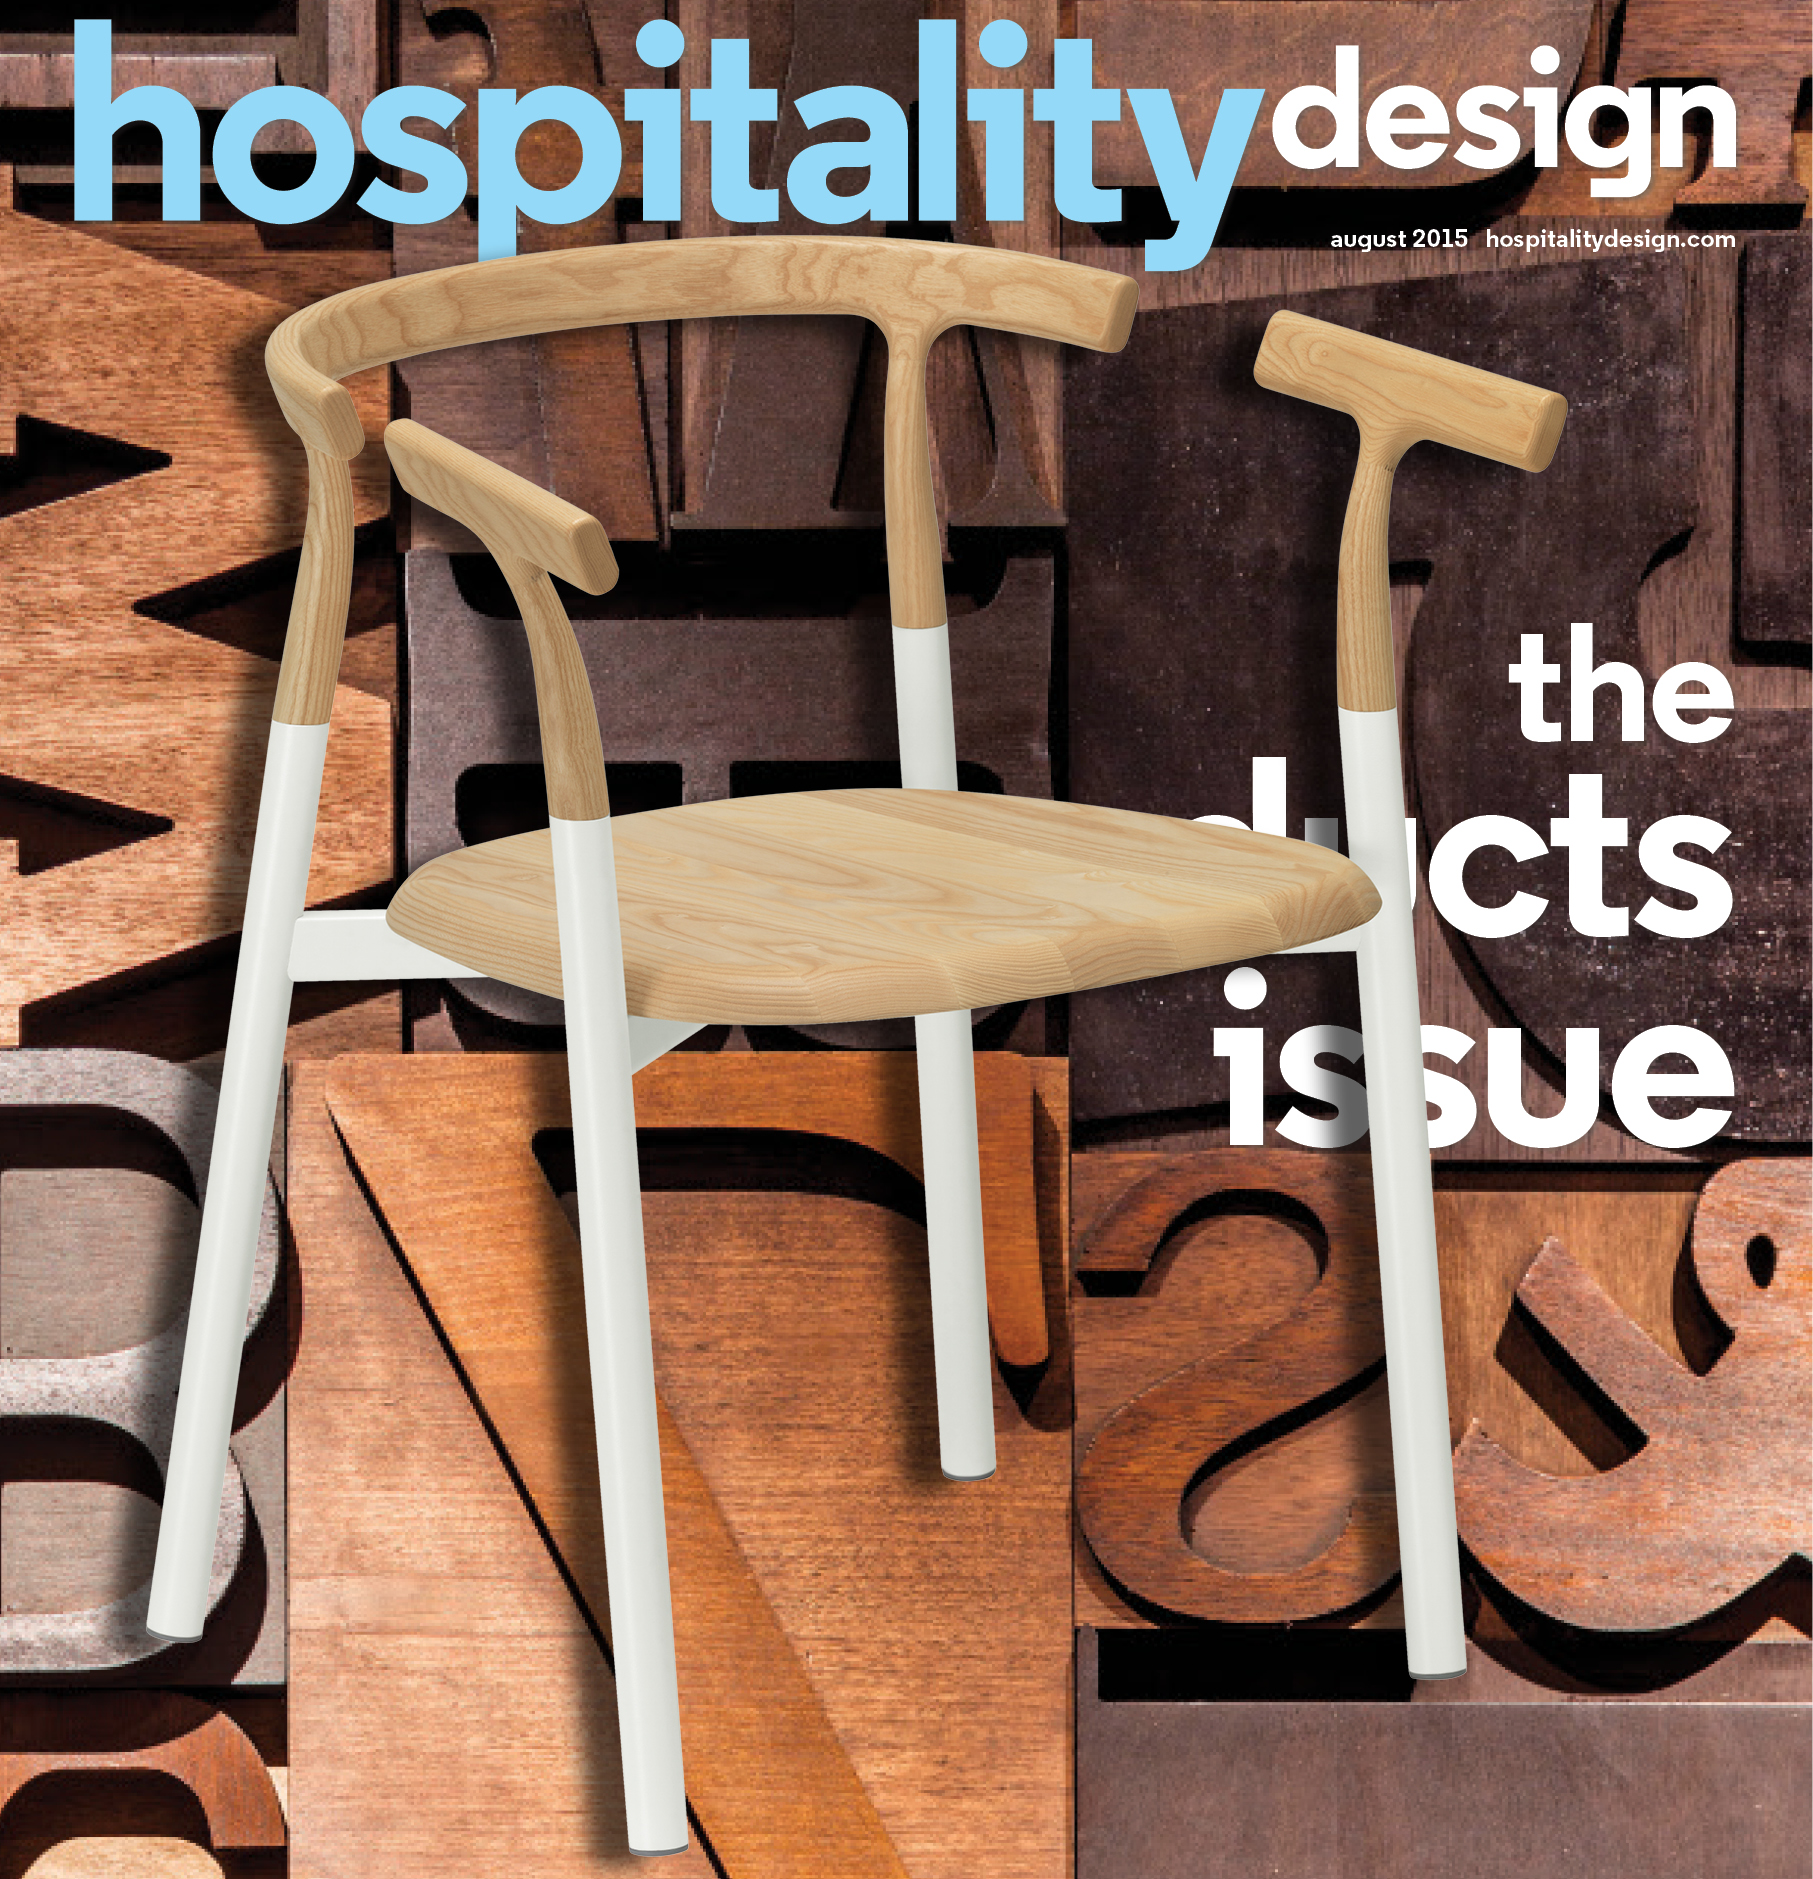 dining chairs italian design posture brace for office chair hospitality twig by nendo suite news studio alias japanese